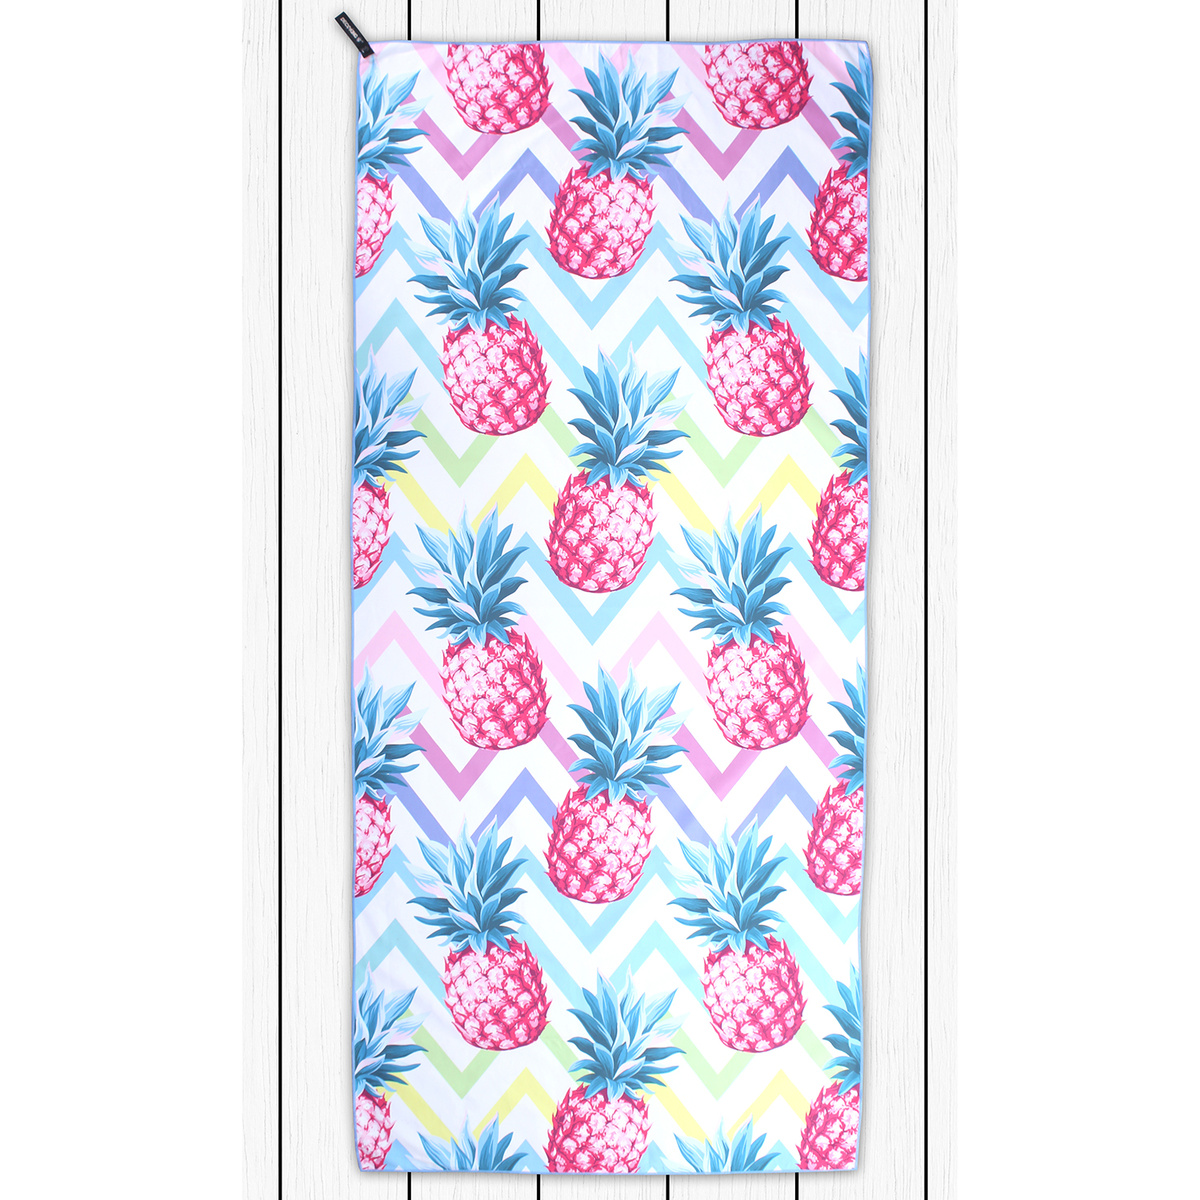 DecoKing Osuška Pineapple, 80 x 180 cm